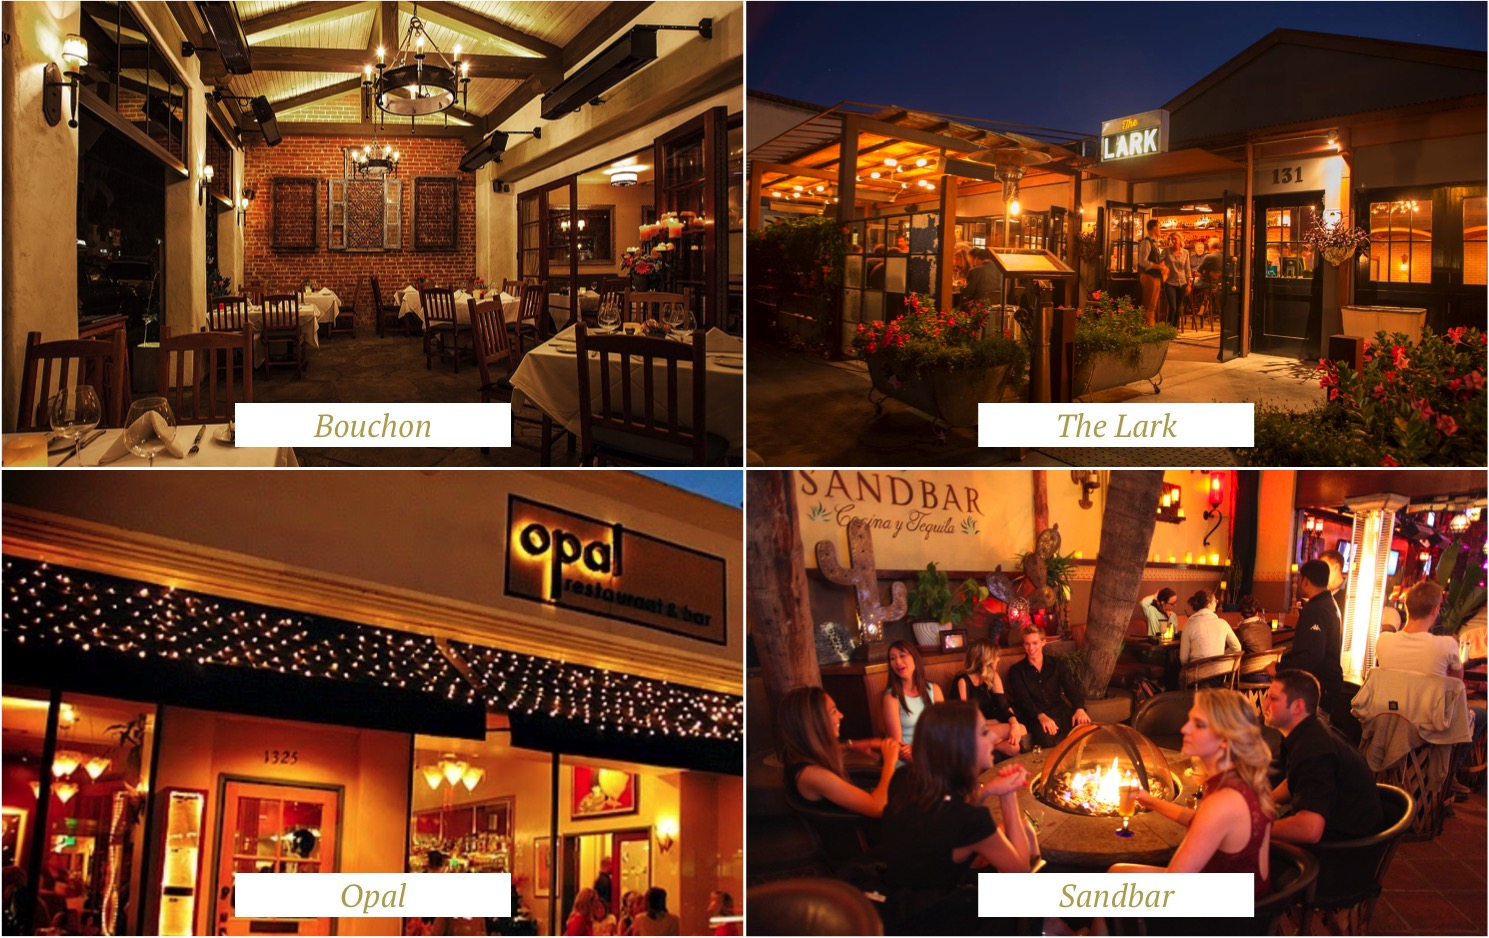 santa barbara - best restaurants - melhores restaurantes - california - highway 1 - bouchon - opal - the lark - sandbar